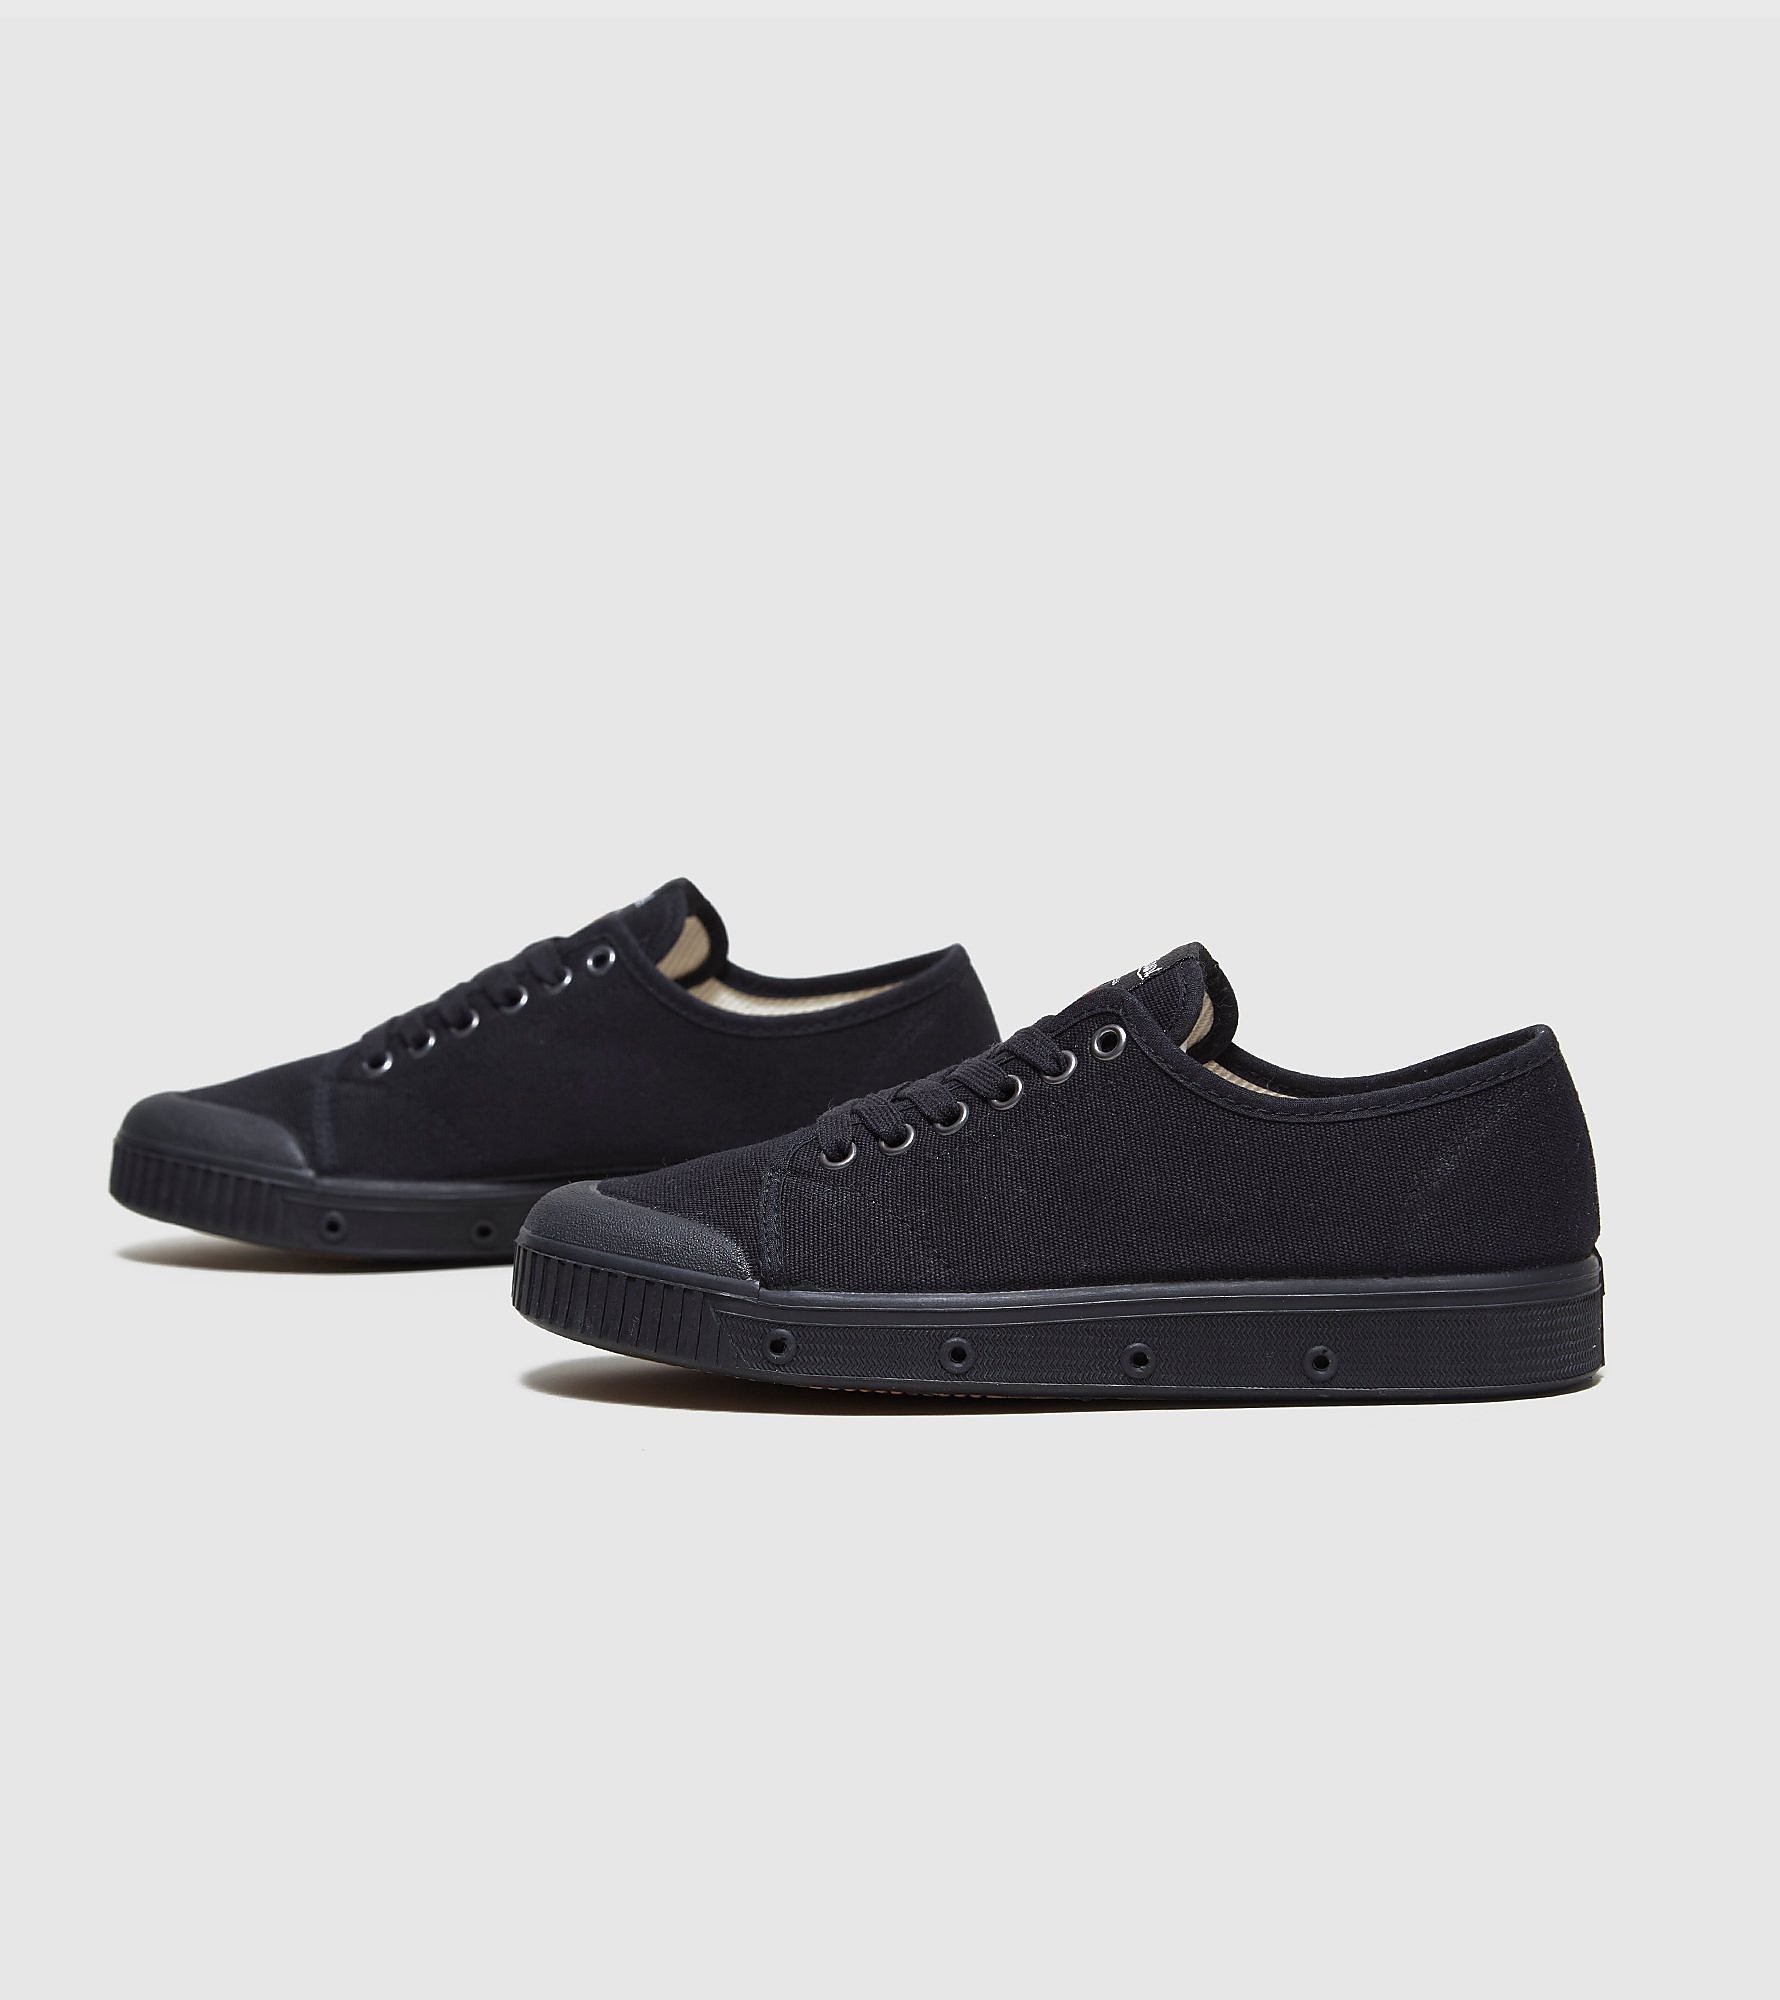 Spring Court G2 Low Women's